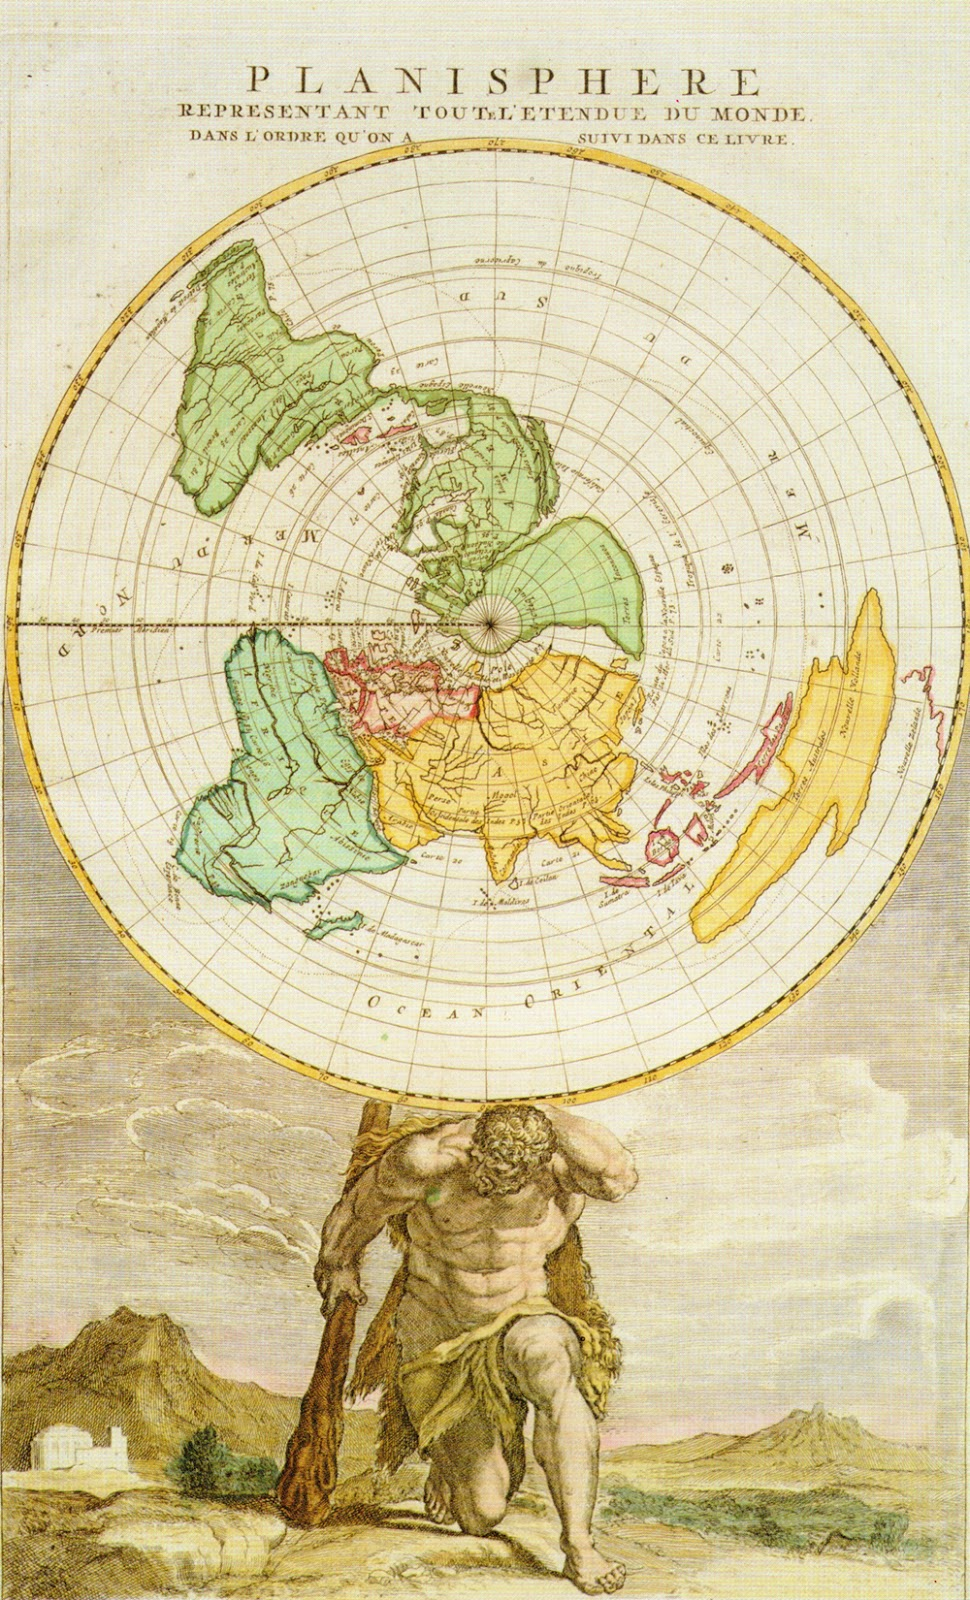 Birkhalls miscellany flat earth the history of the ball part the following map was created by johannes ruysch and again shows a disc shaped earth once again though i dont think it was the intention of the mapmaker gumiabroncs Gallery